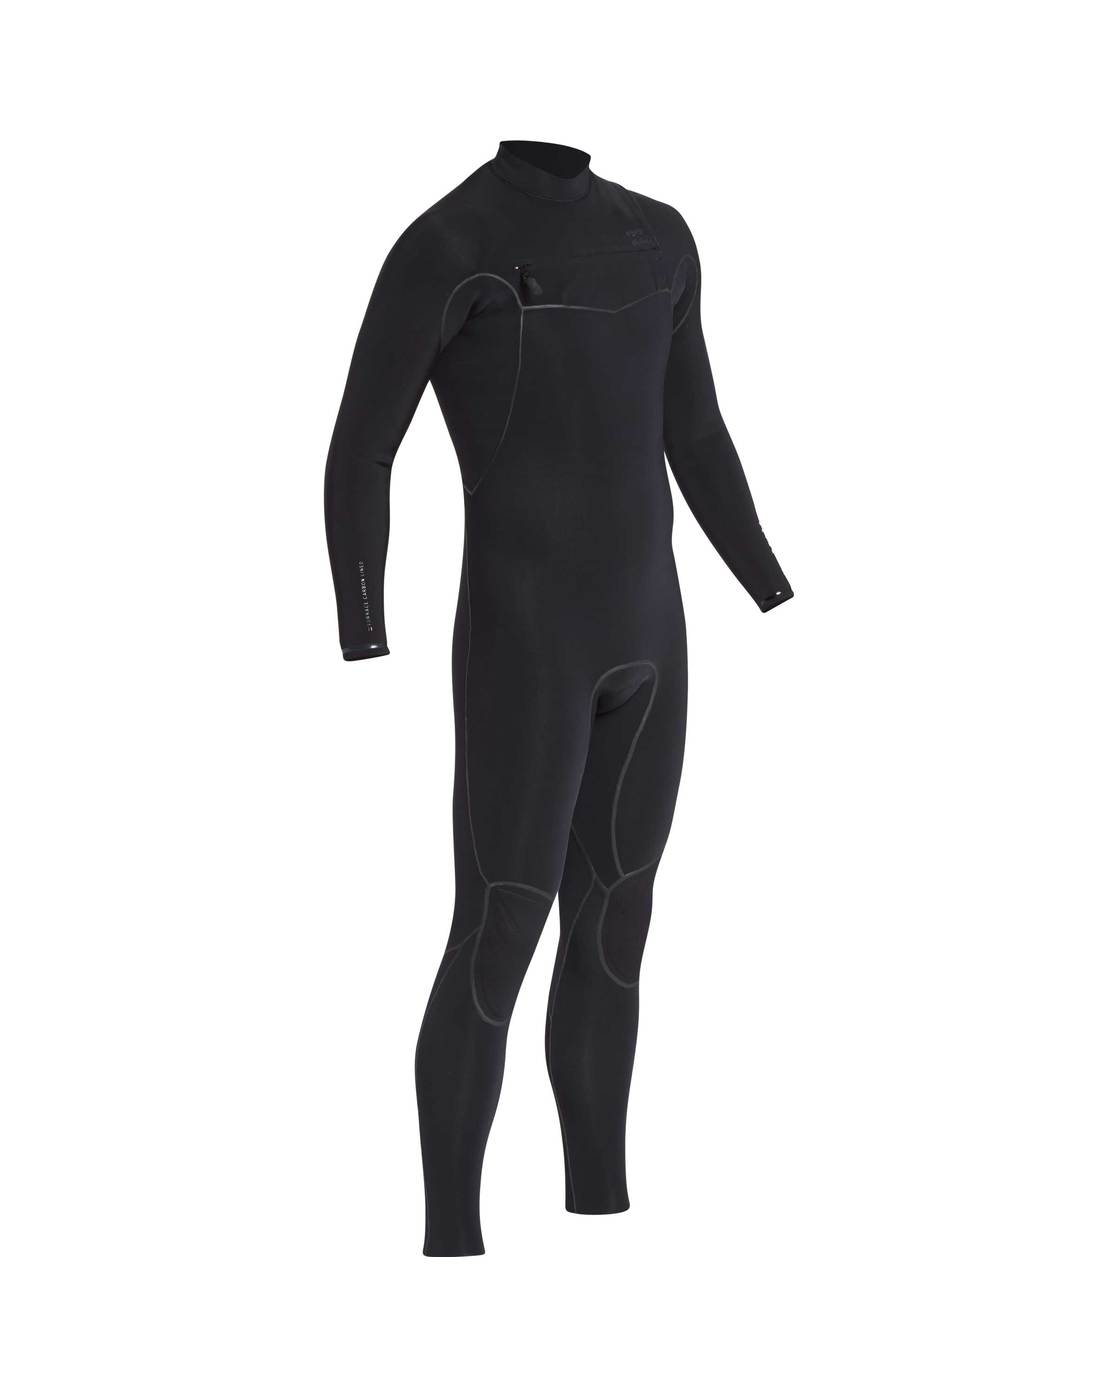 1da0661080 4/3 Furnace Carbon Ultra Chest Zip Wetsuit